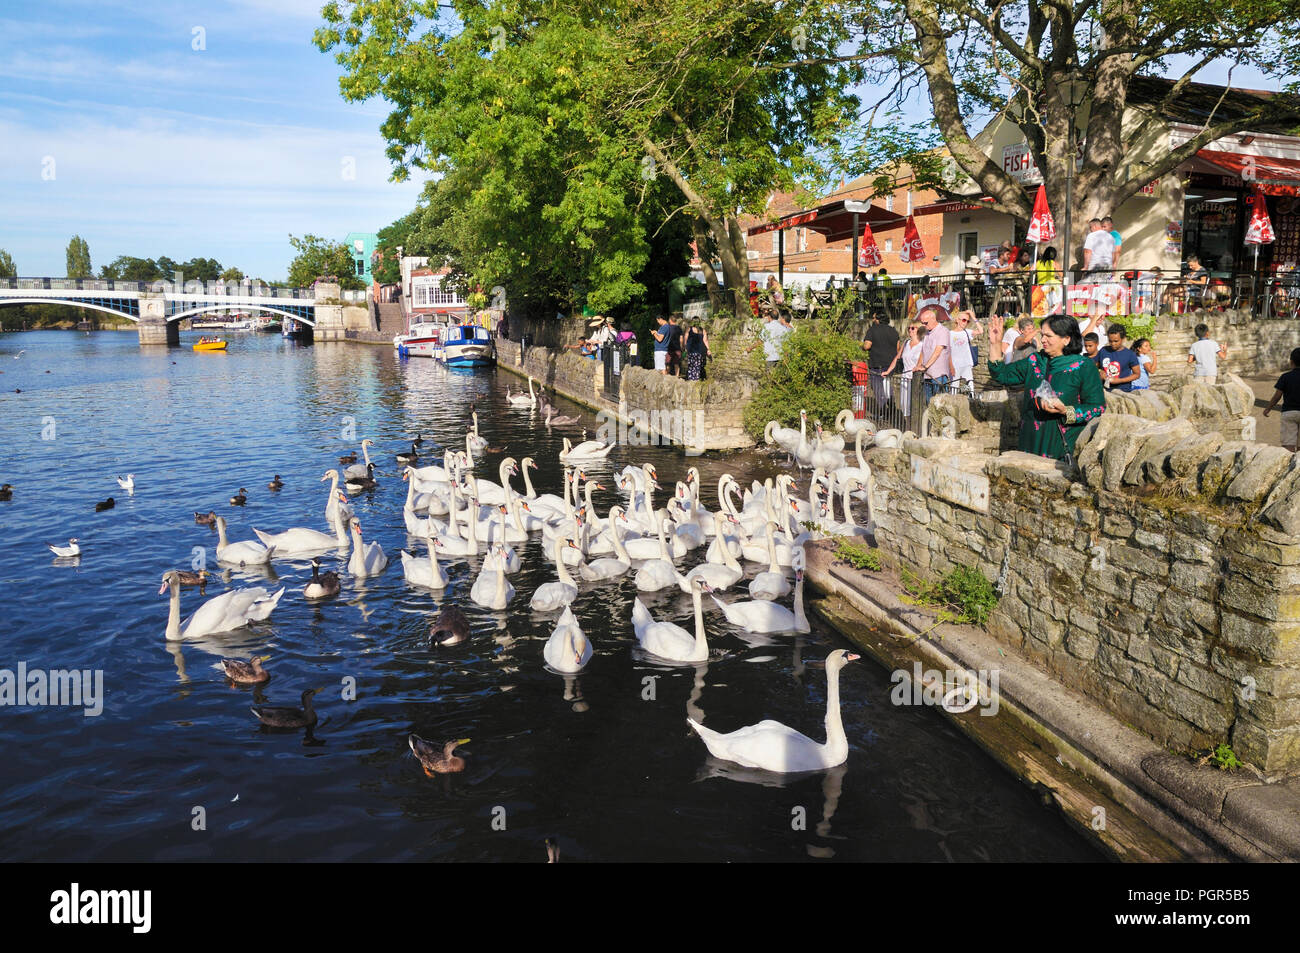 People feeding a gaggle of swans on the River Thames at Windsor, Berkshire, England, UK - Stock Image